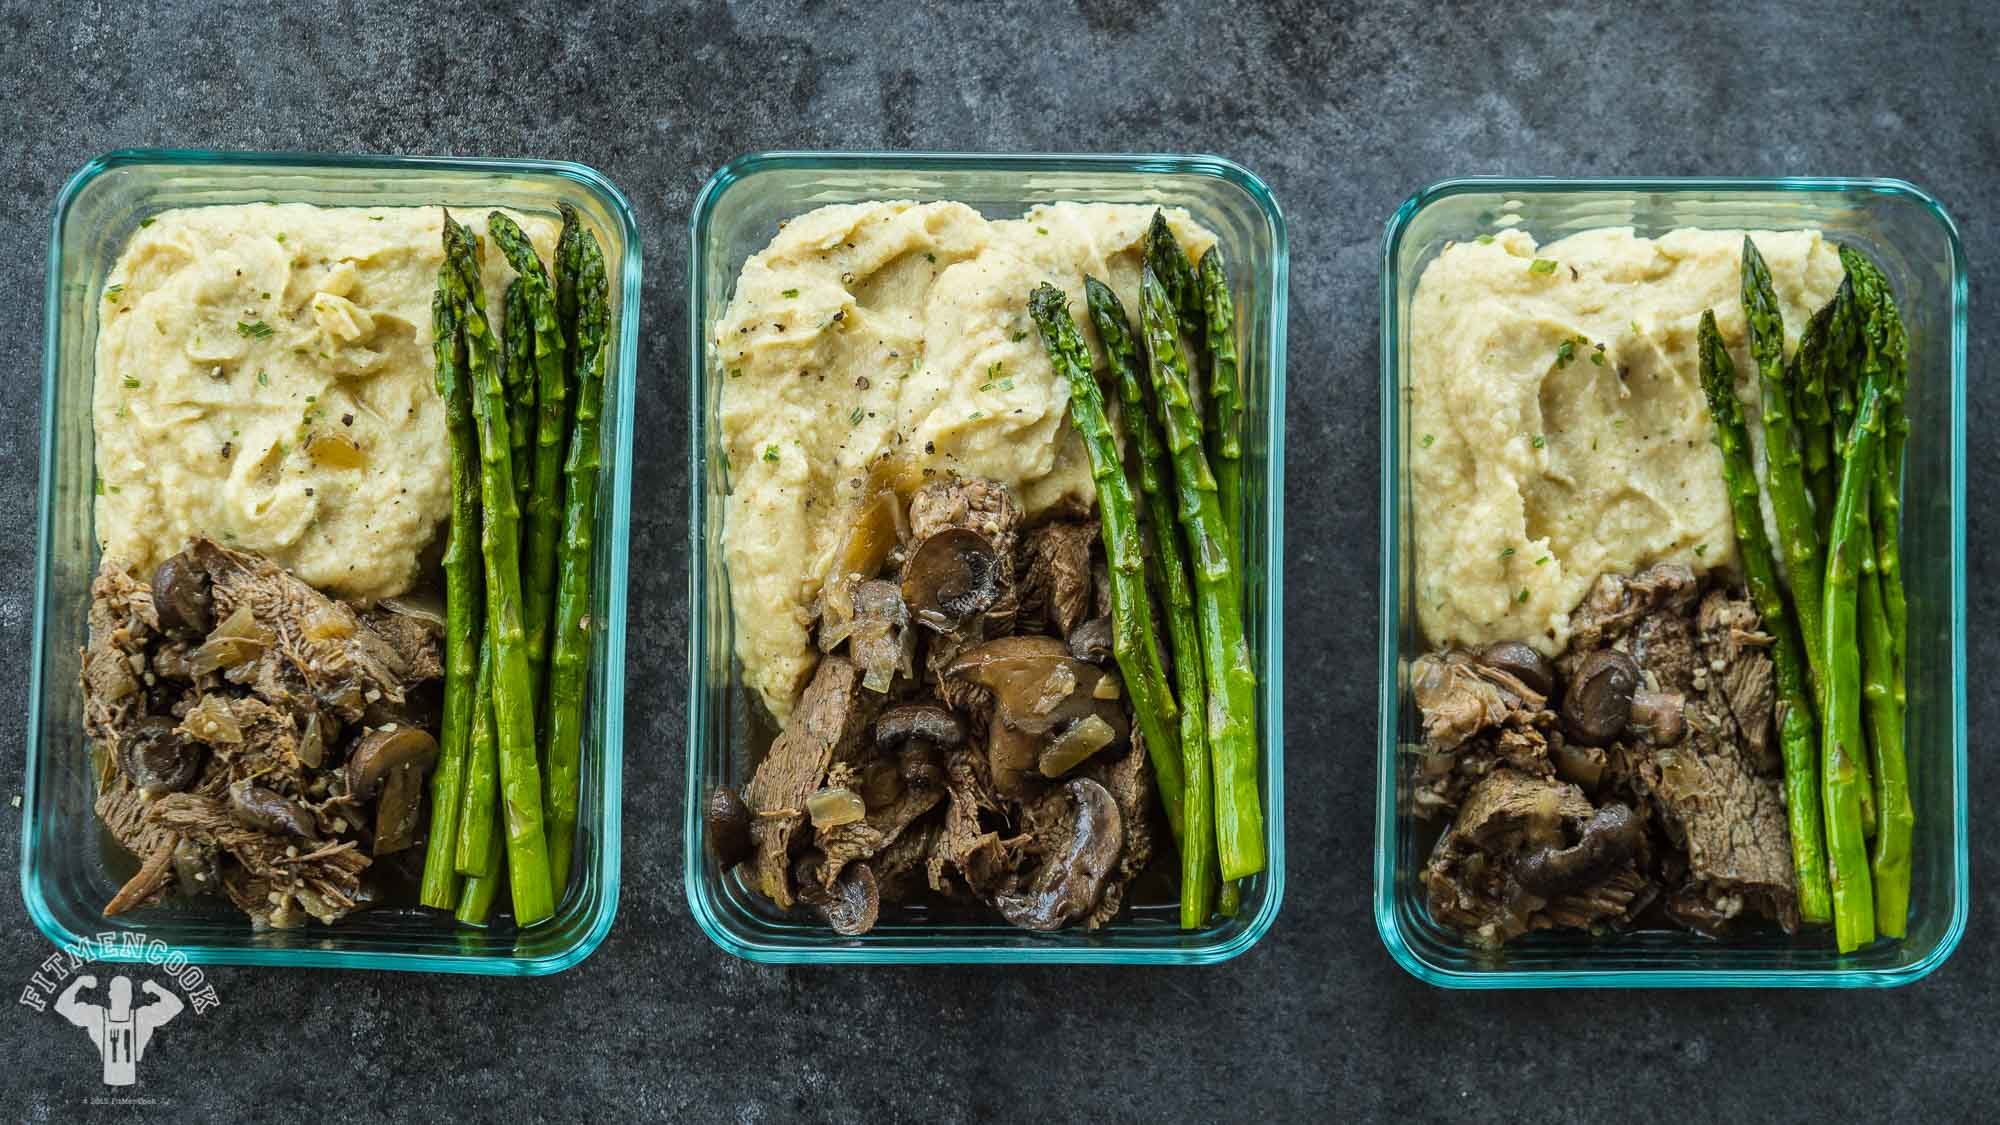 Paleo Prep - Bison Roast, Whipped Parsnips Asparagus